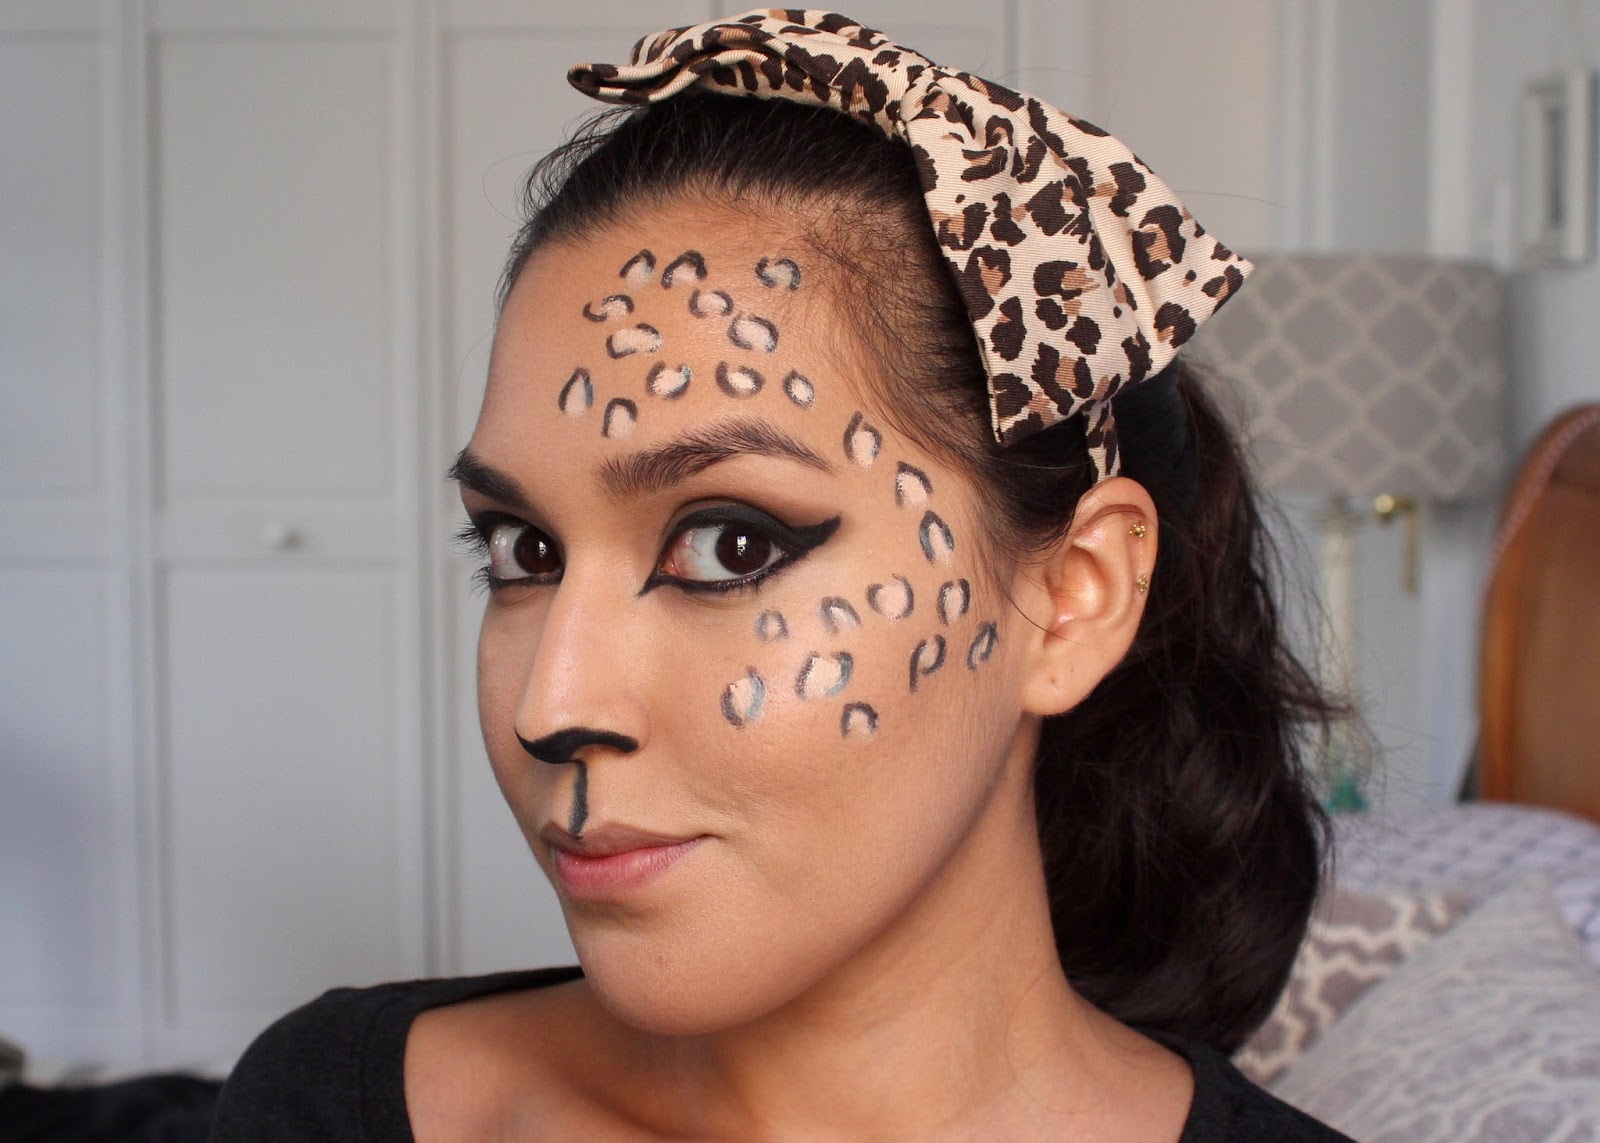 Madeulook by lex's leopard makeup tutorial featuring bh cosmetics.